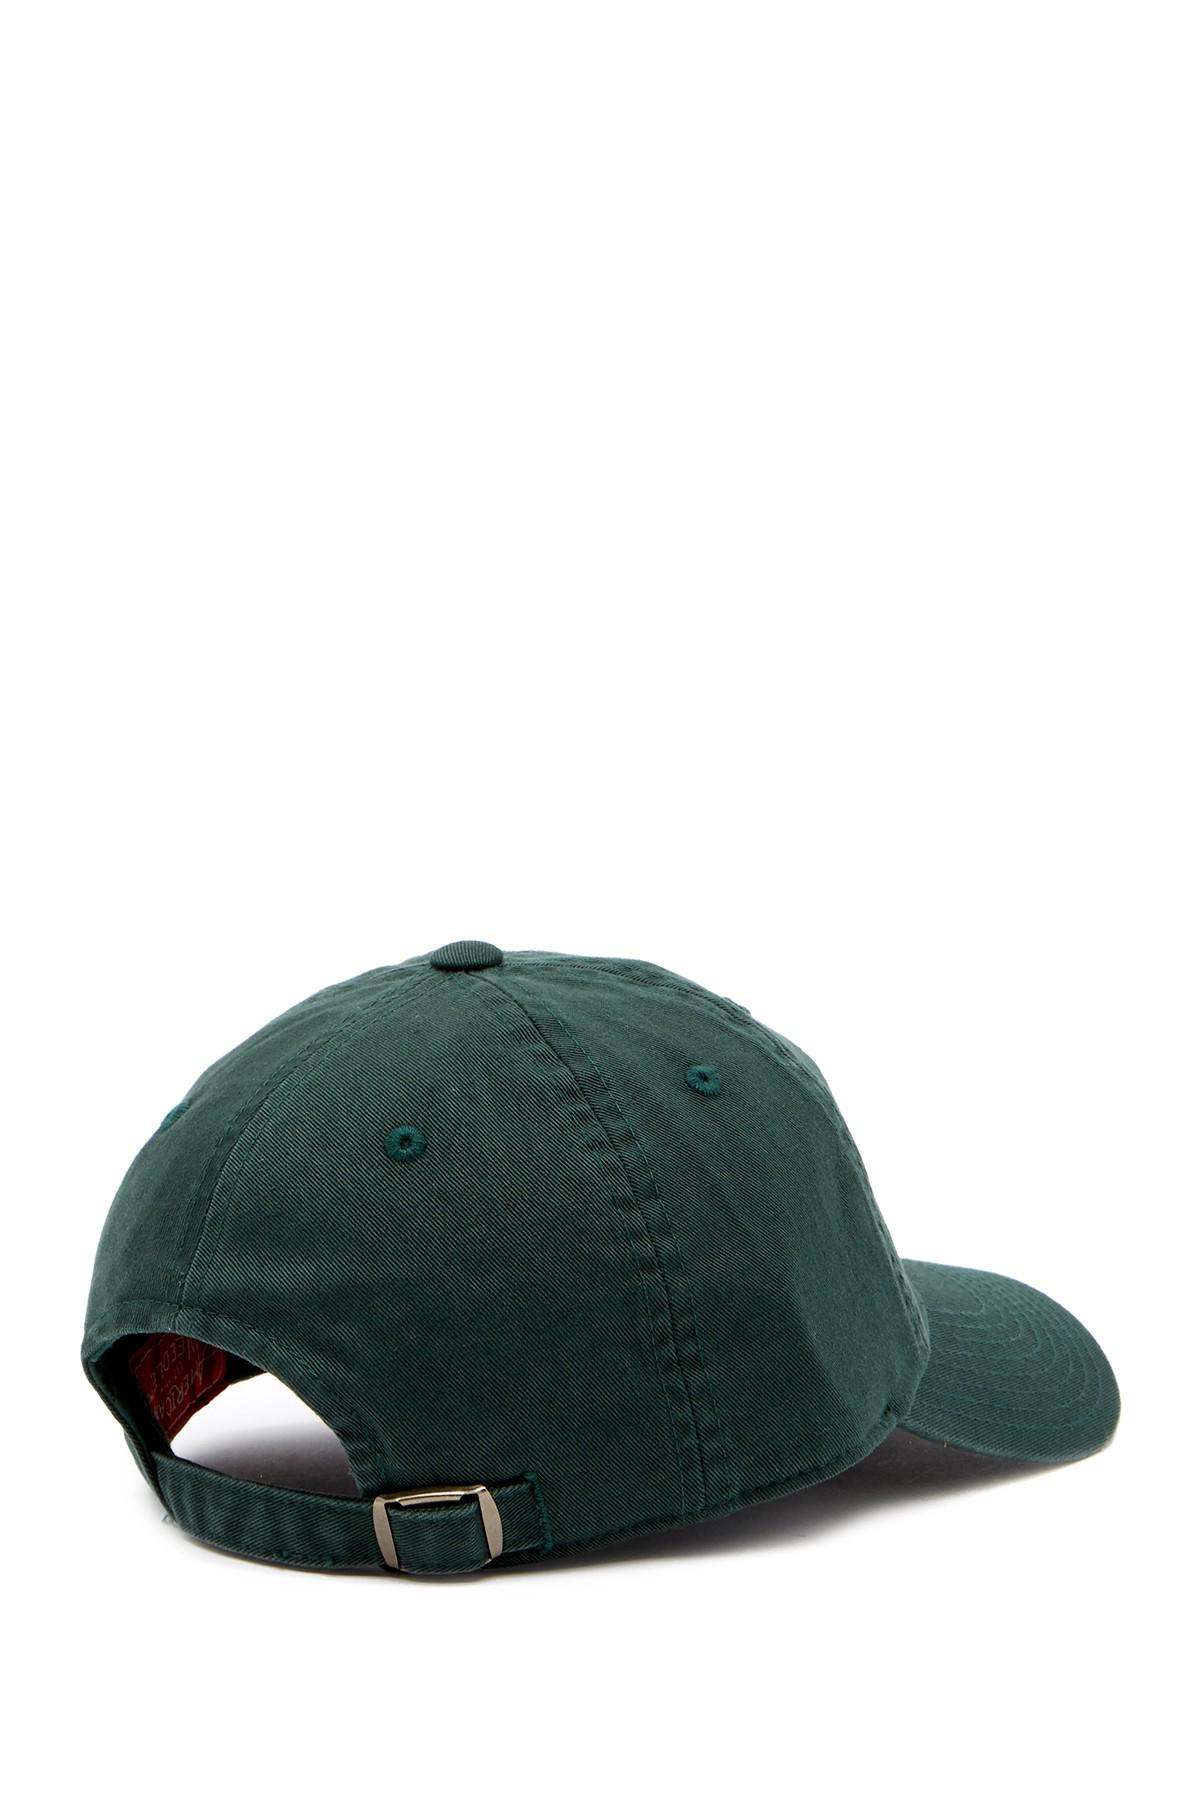 ce18040bb1c Lyst - American Needle Tree Micro Baseball Cap in Green for Men